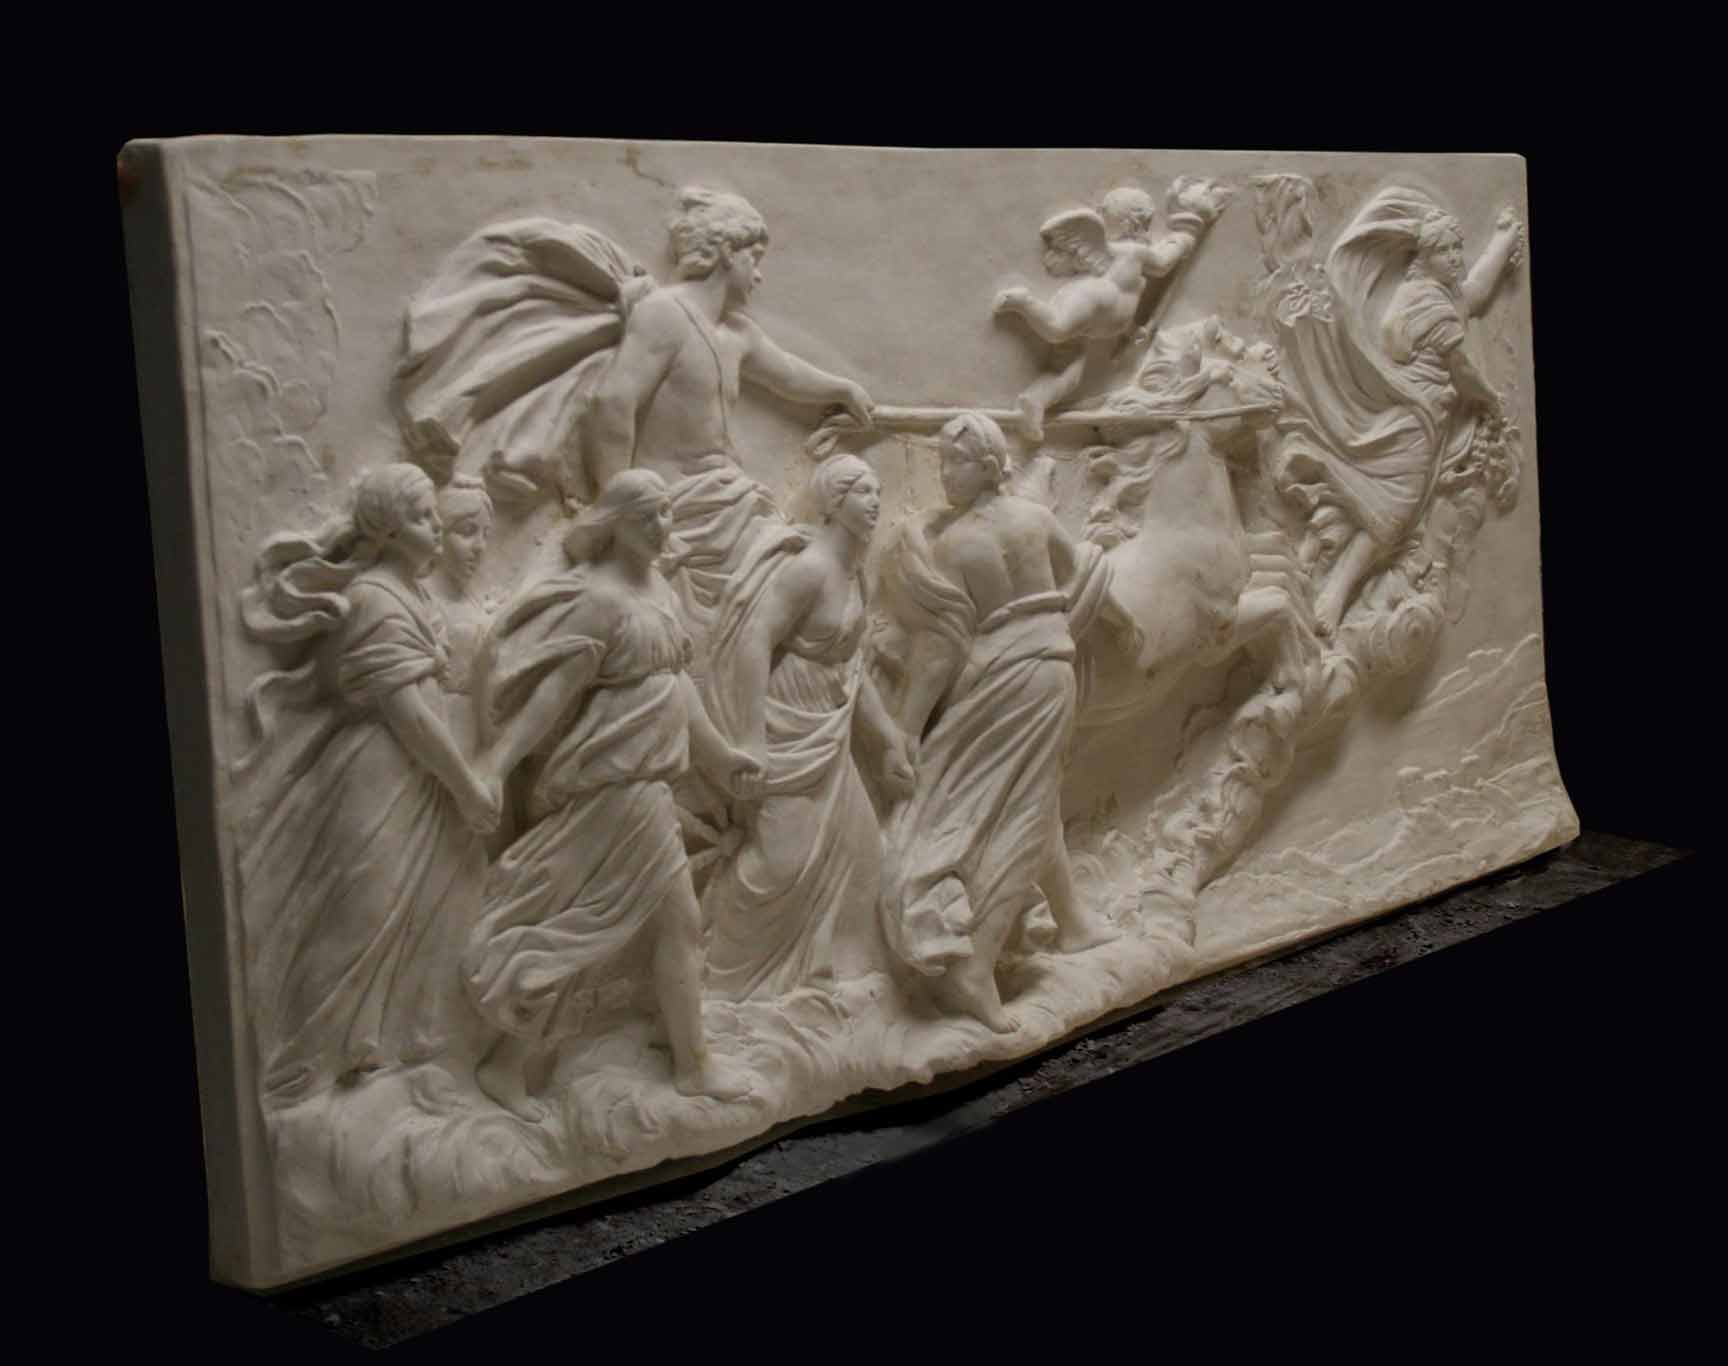 photo of a plaster cast relief of a woman flying and leading a chariot with a man pulled by horses towards the right while a cherub and other women fill the scene, on a black background